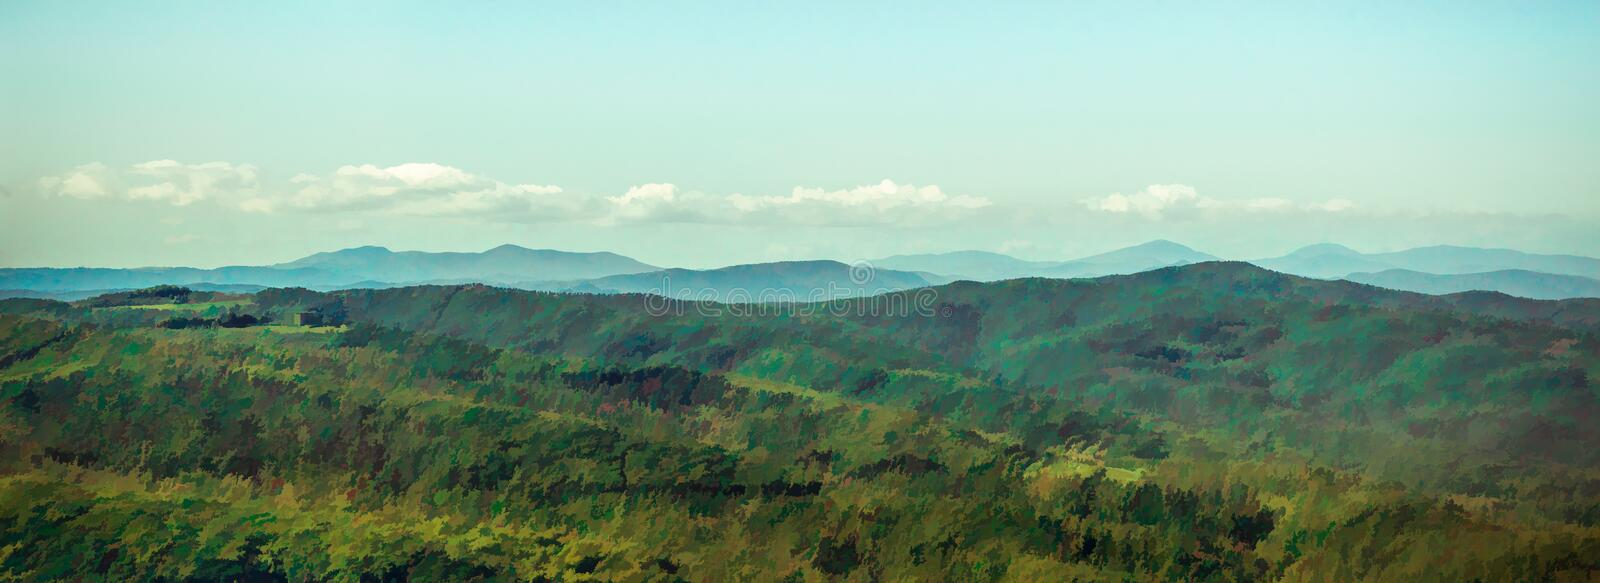 Landscape panoramic view of a Tuscan valley royalty free illustration